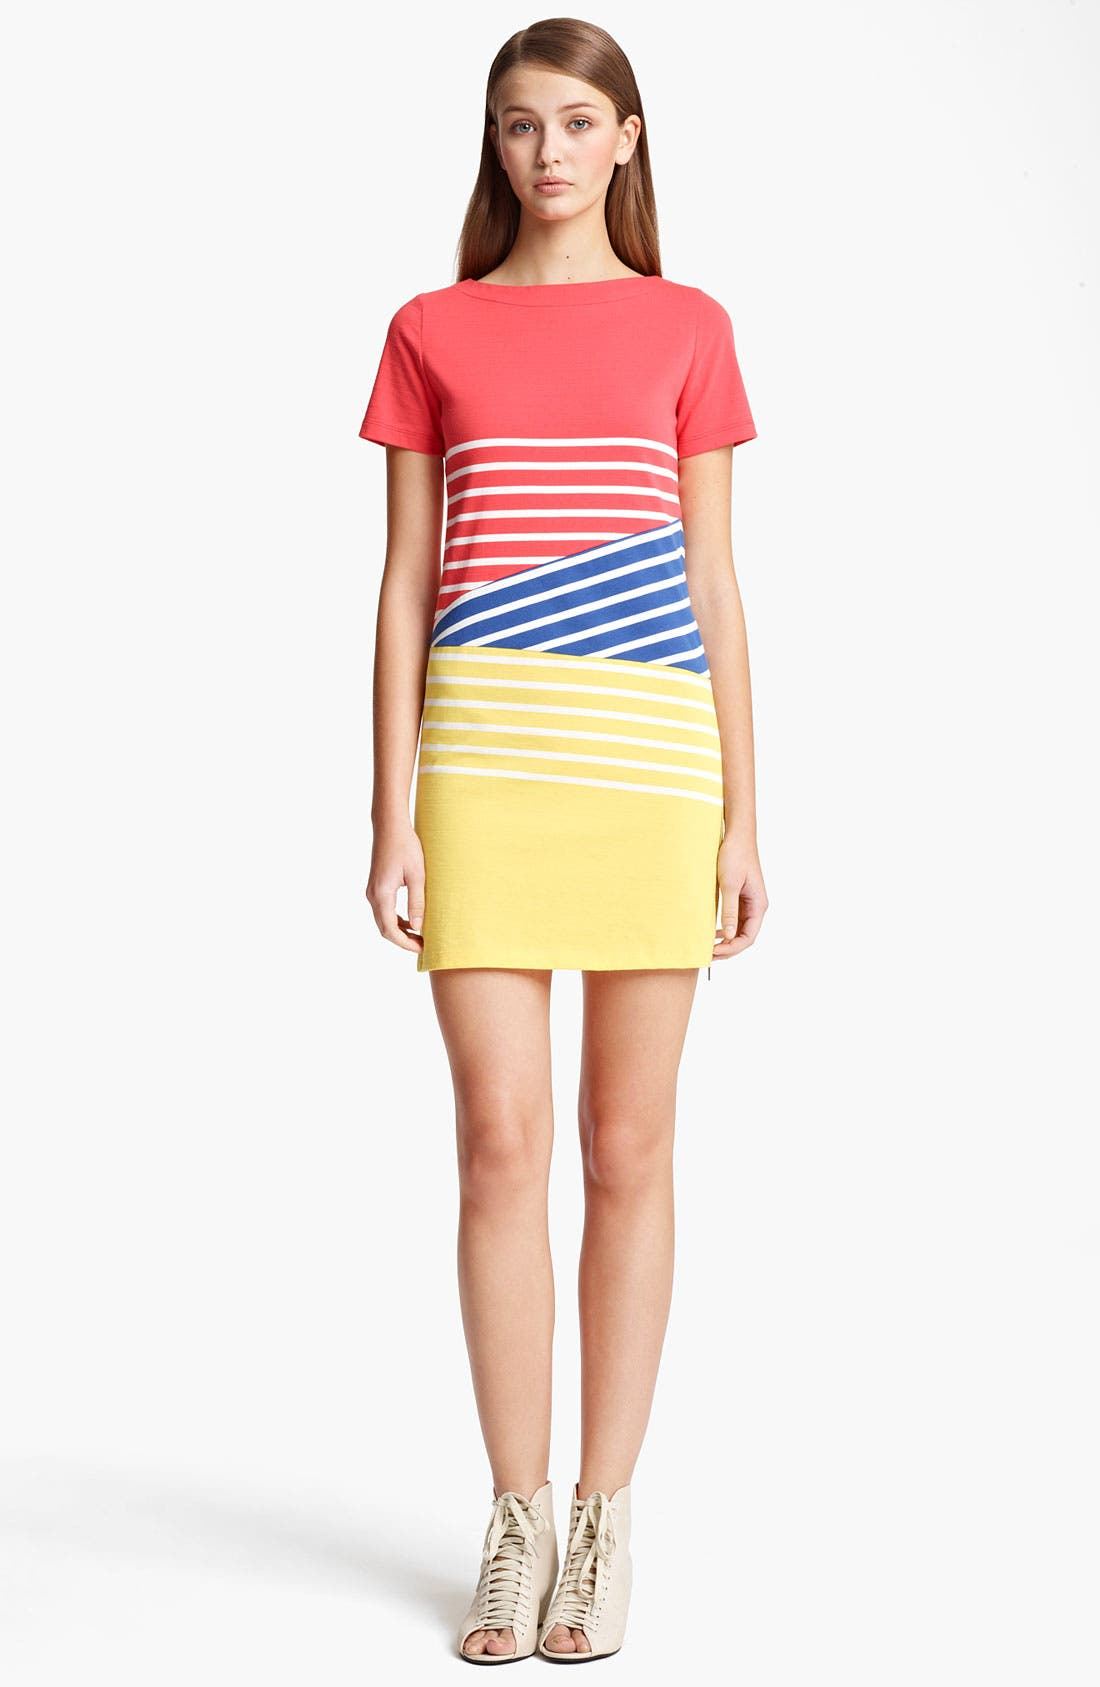 Main Image - Band of Outsiders 'Breton' Stripe Dress